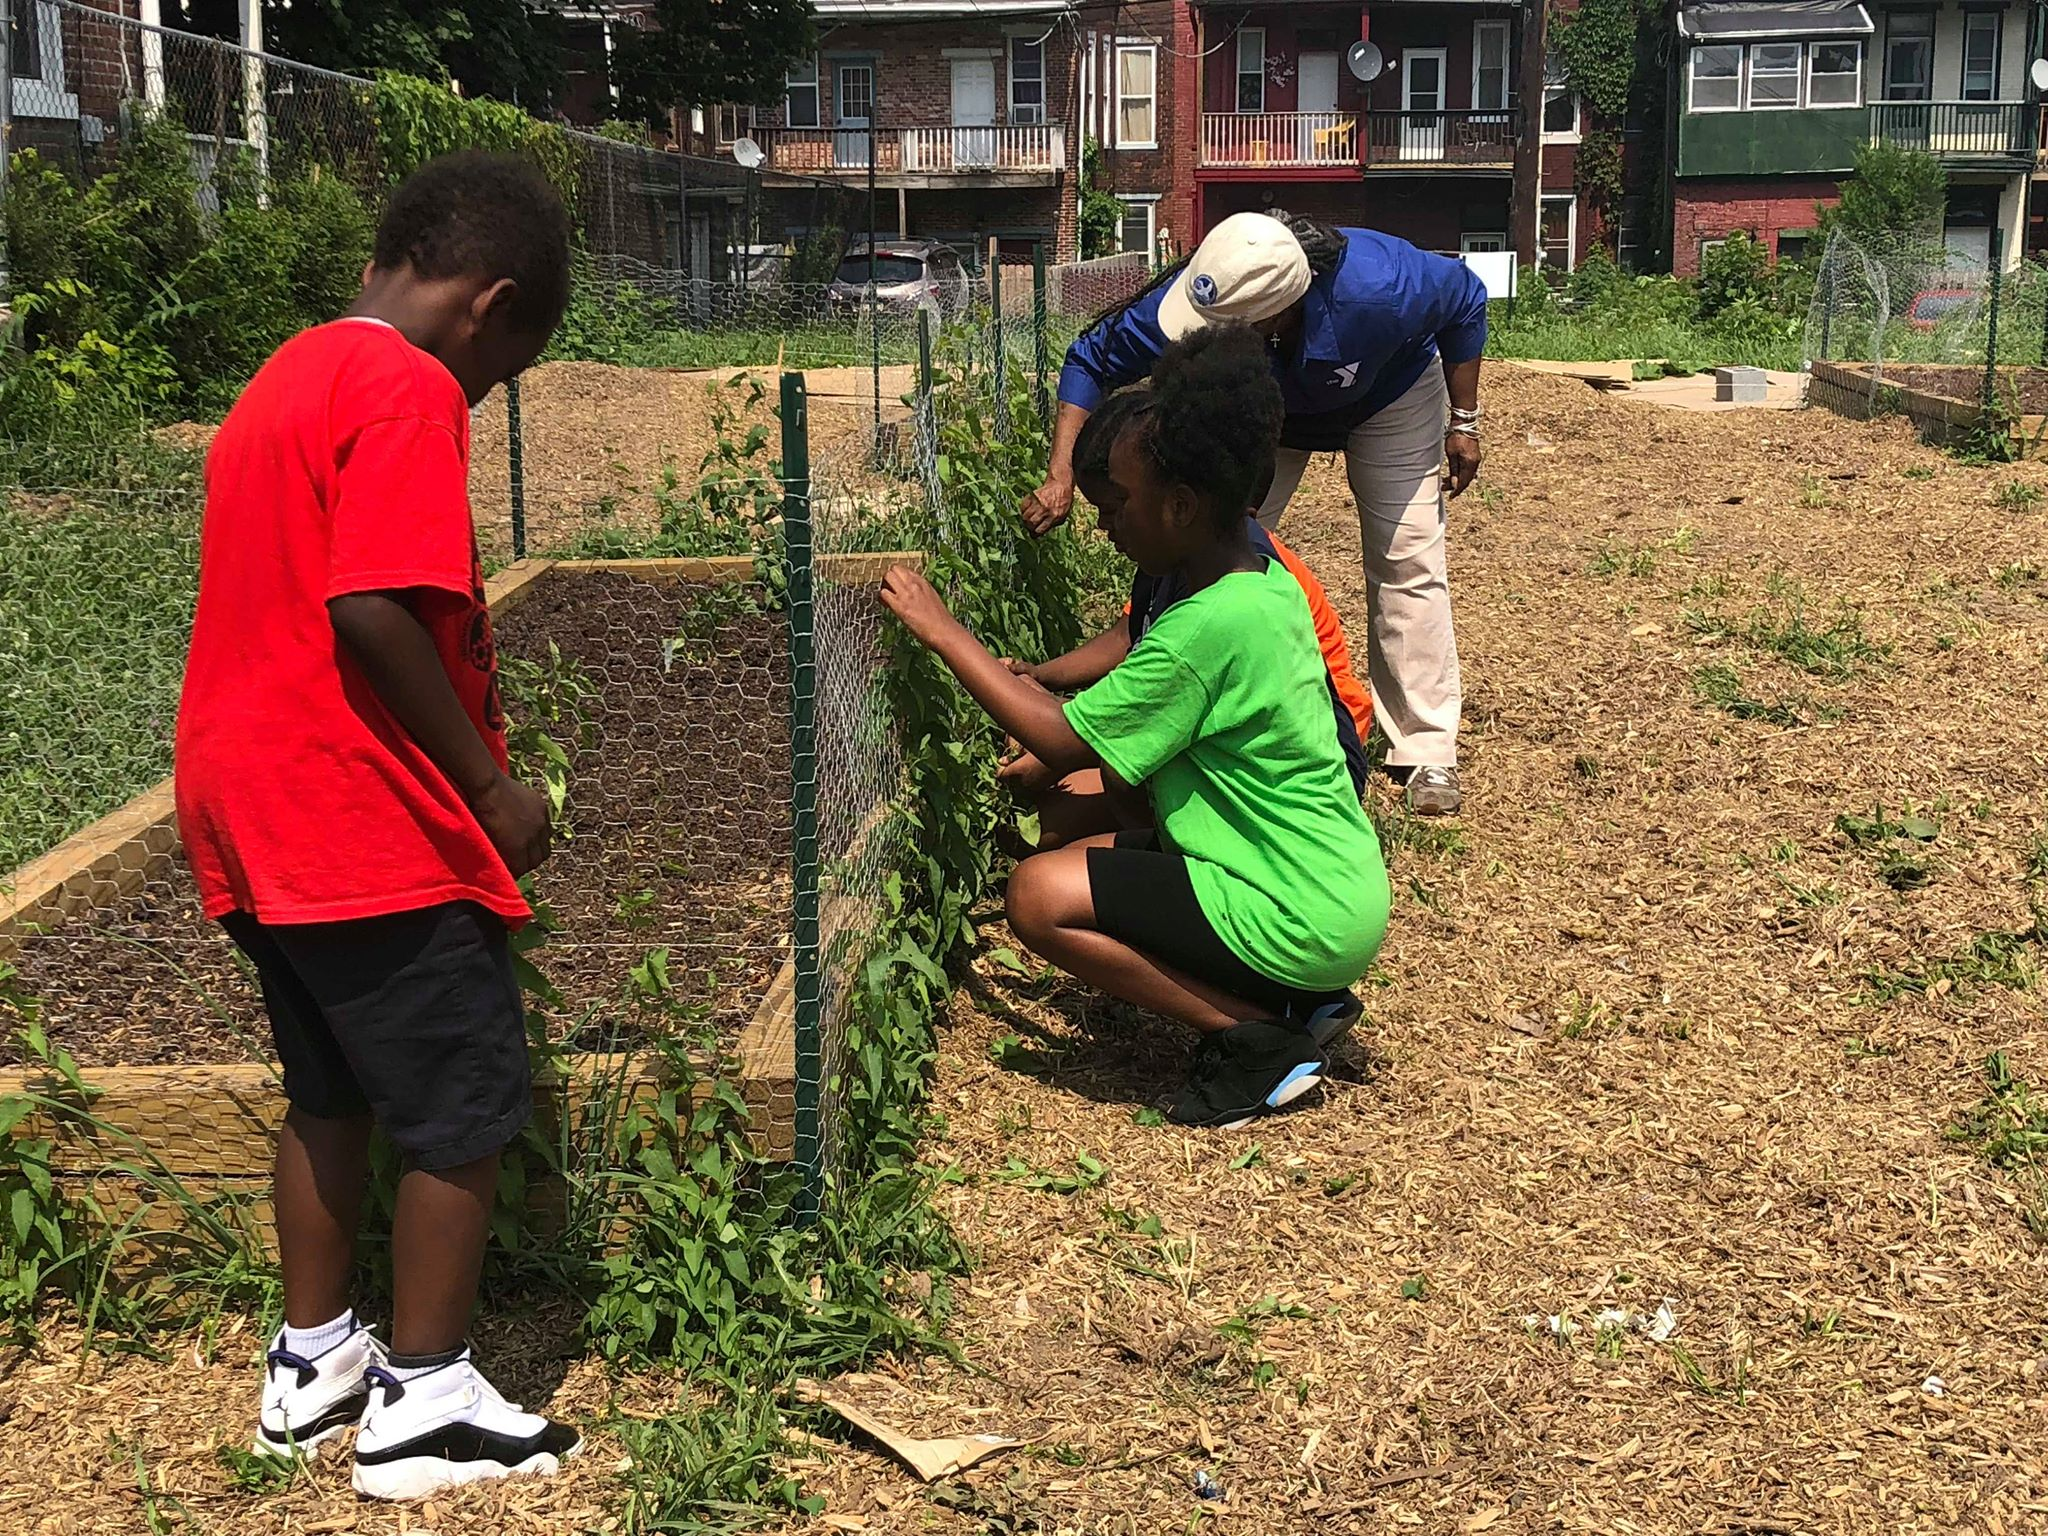 A Garden Grows: Veggies, learning take root at Camp Curtin Y. - theBurg